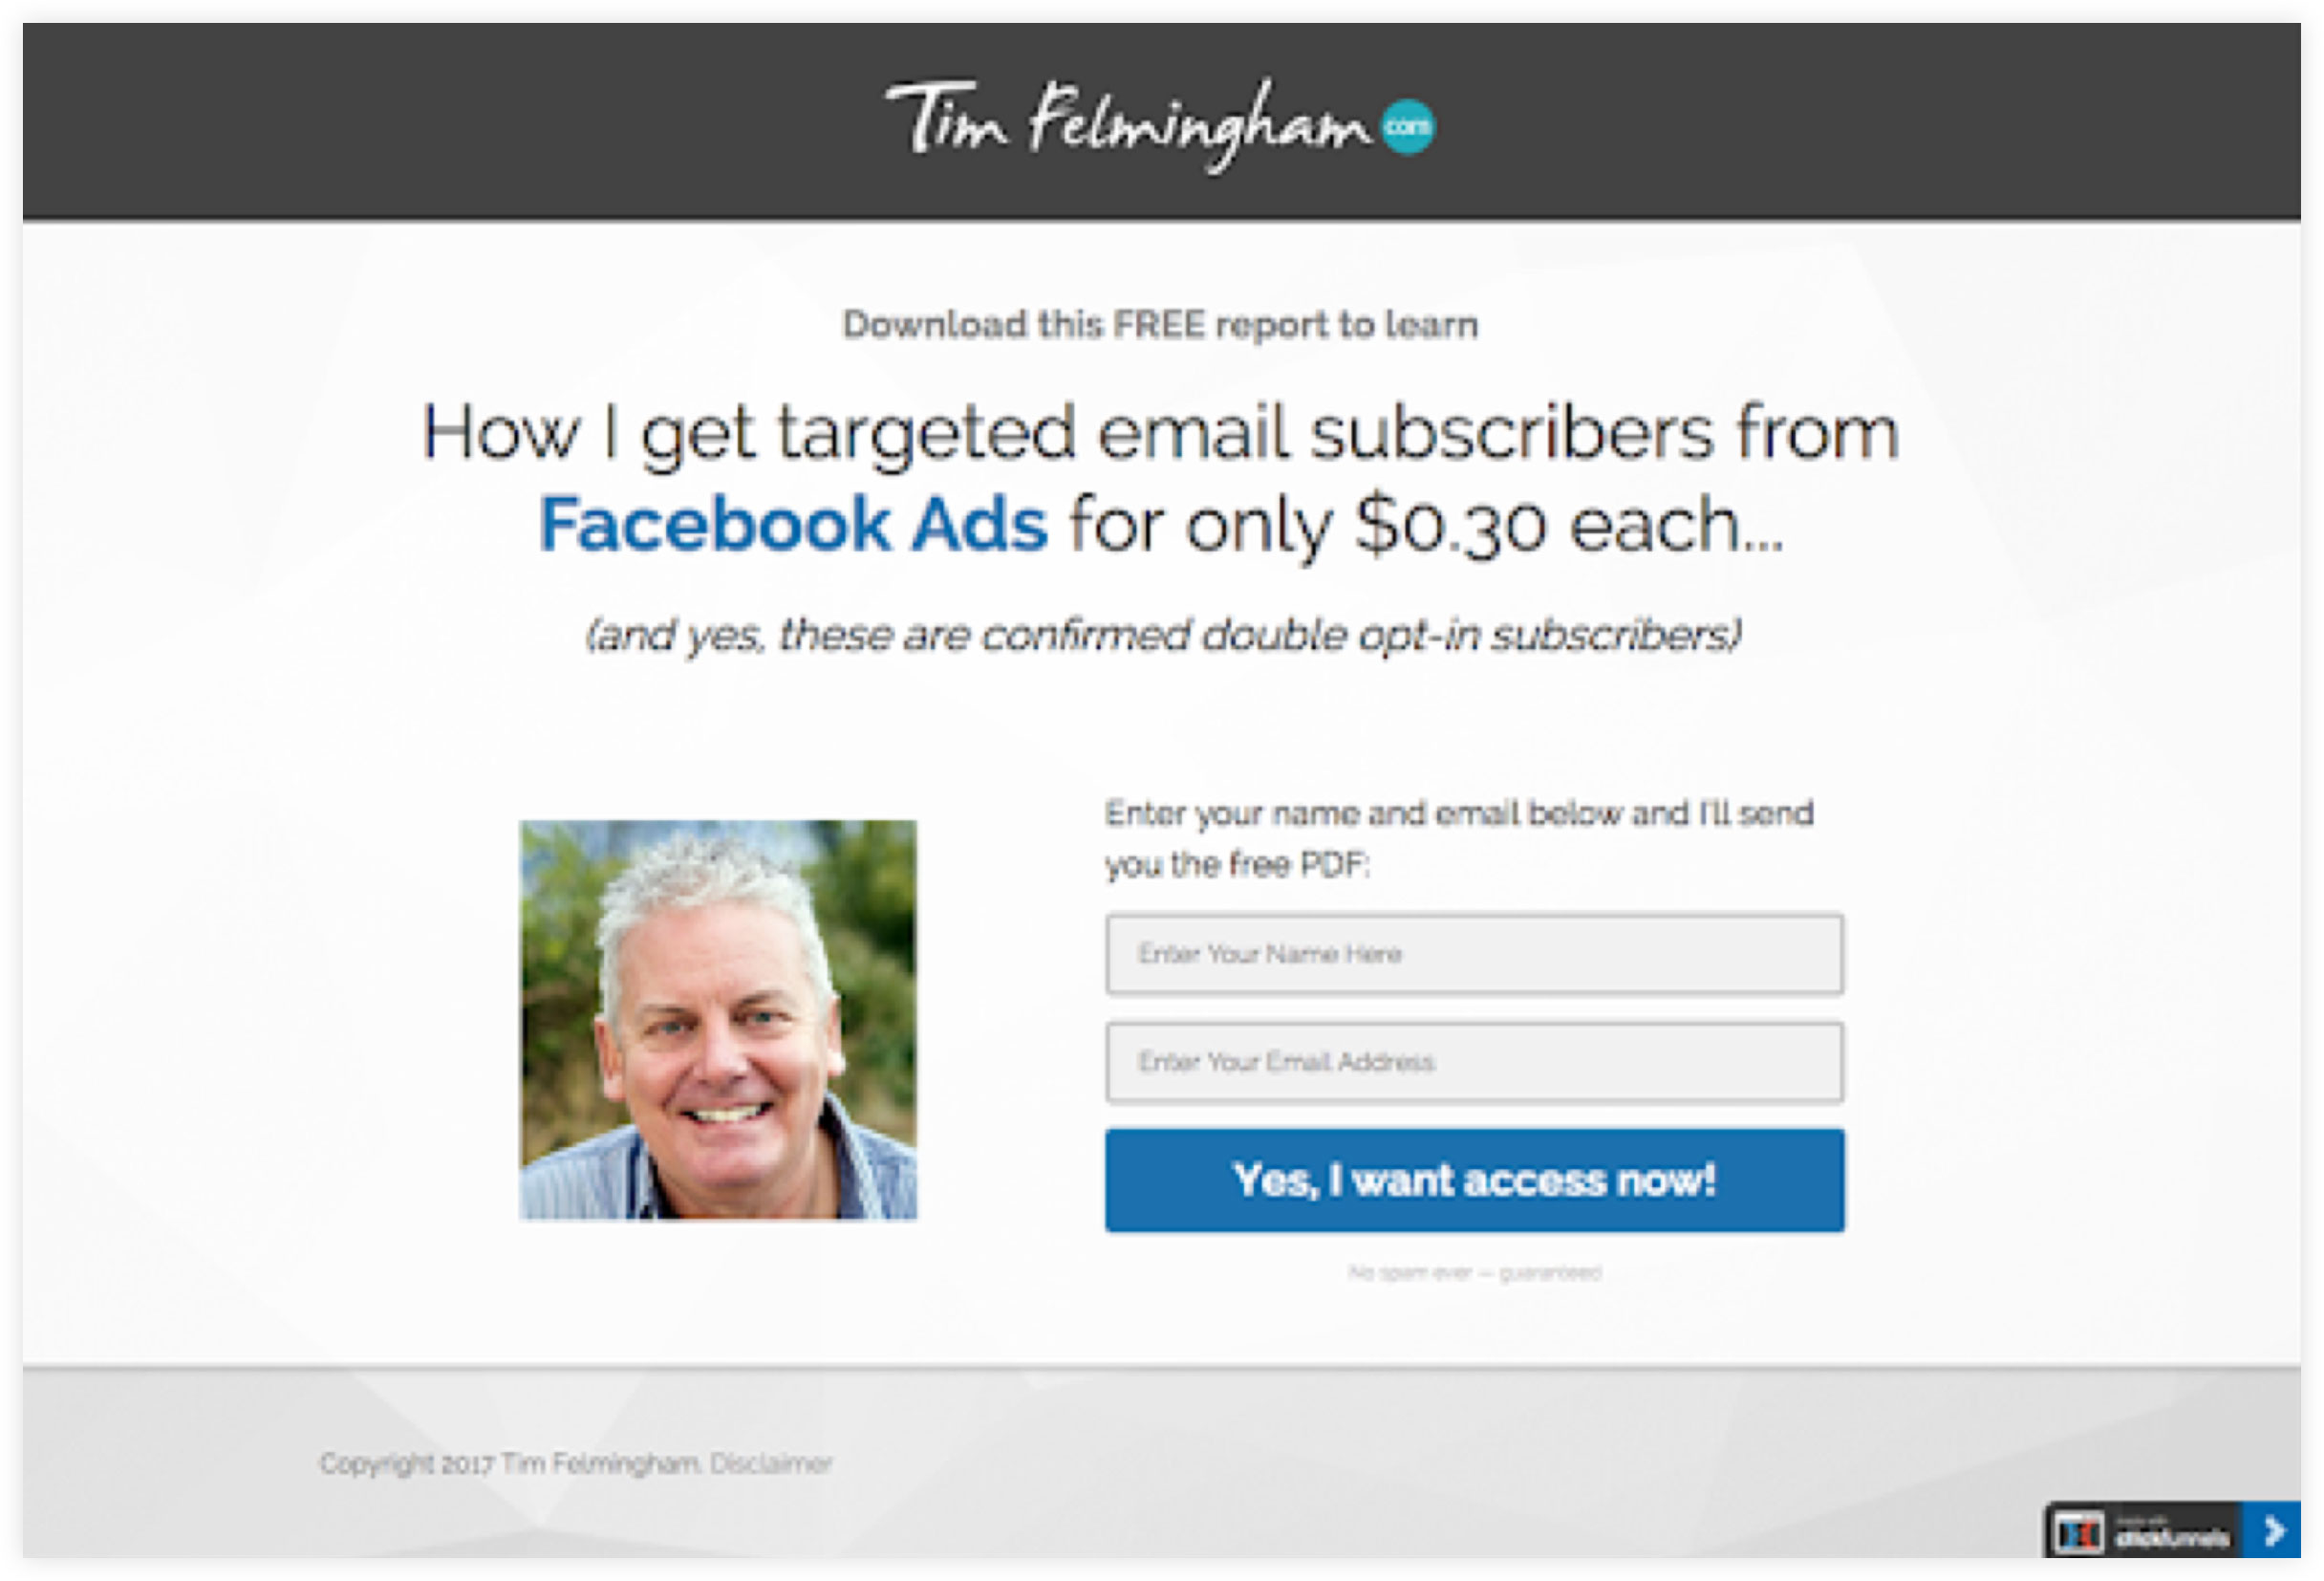 Tim Felmingham ClickFunnels Squeeze Page Example